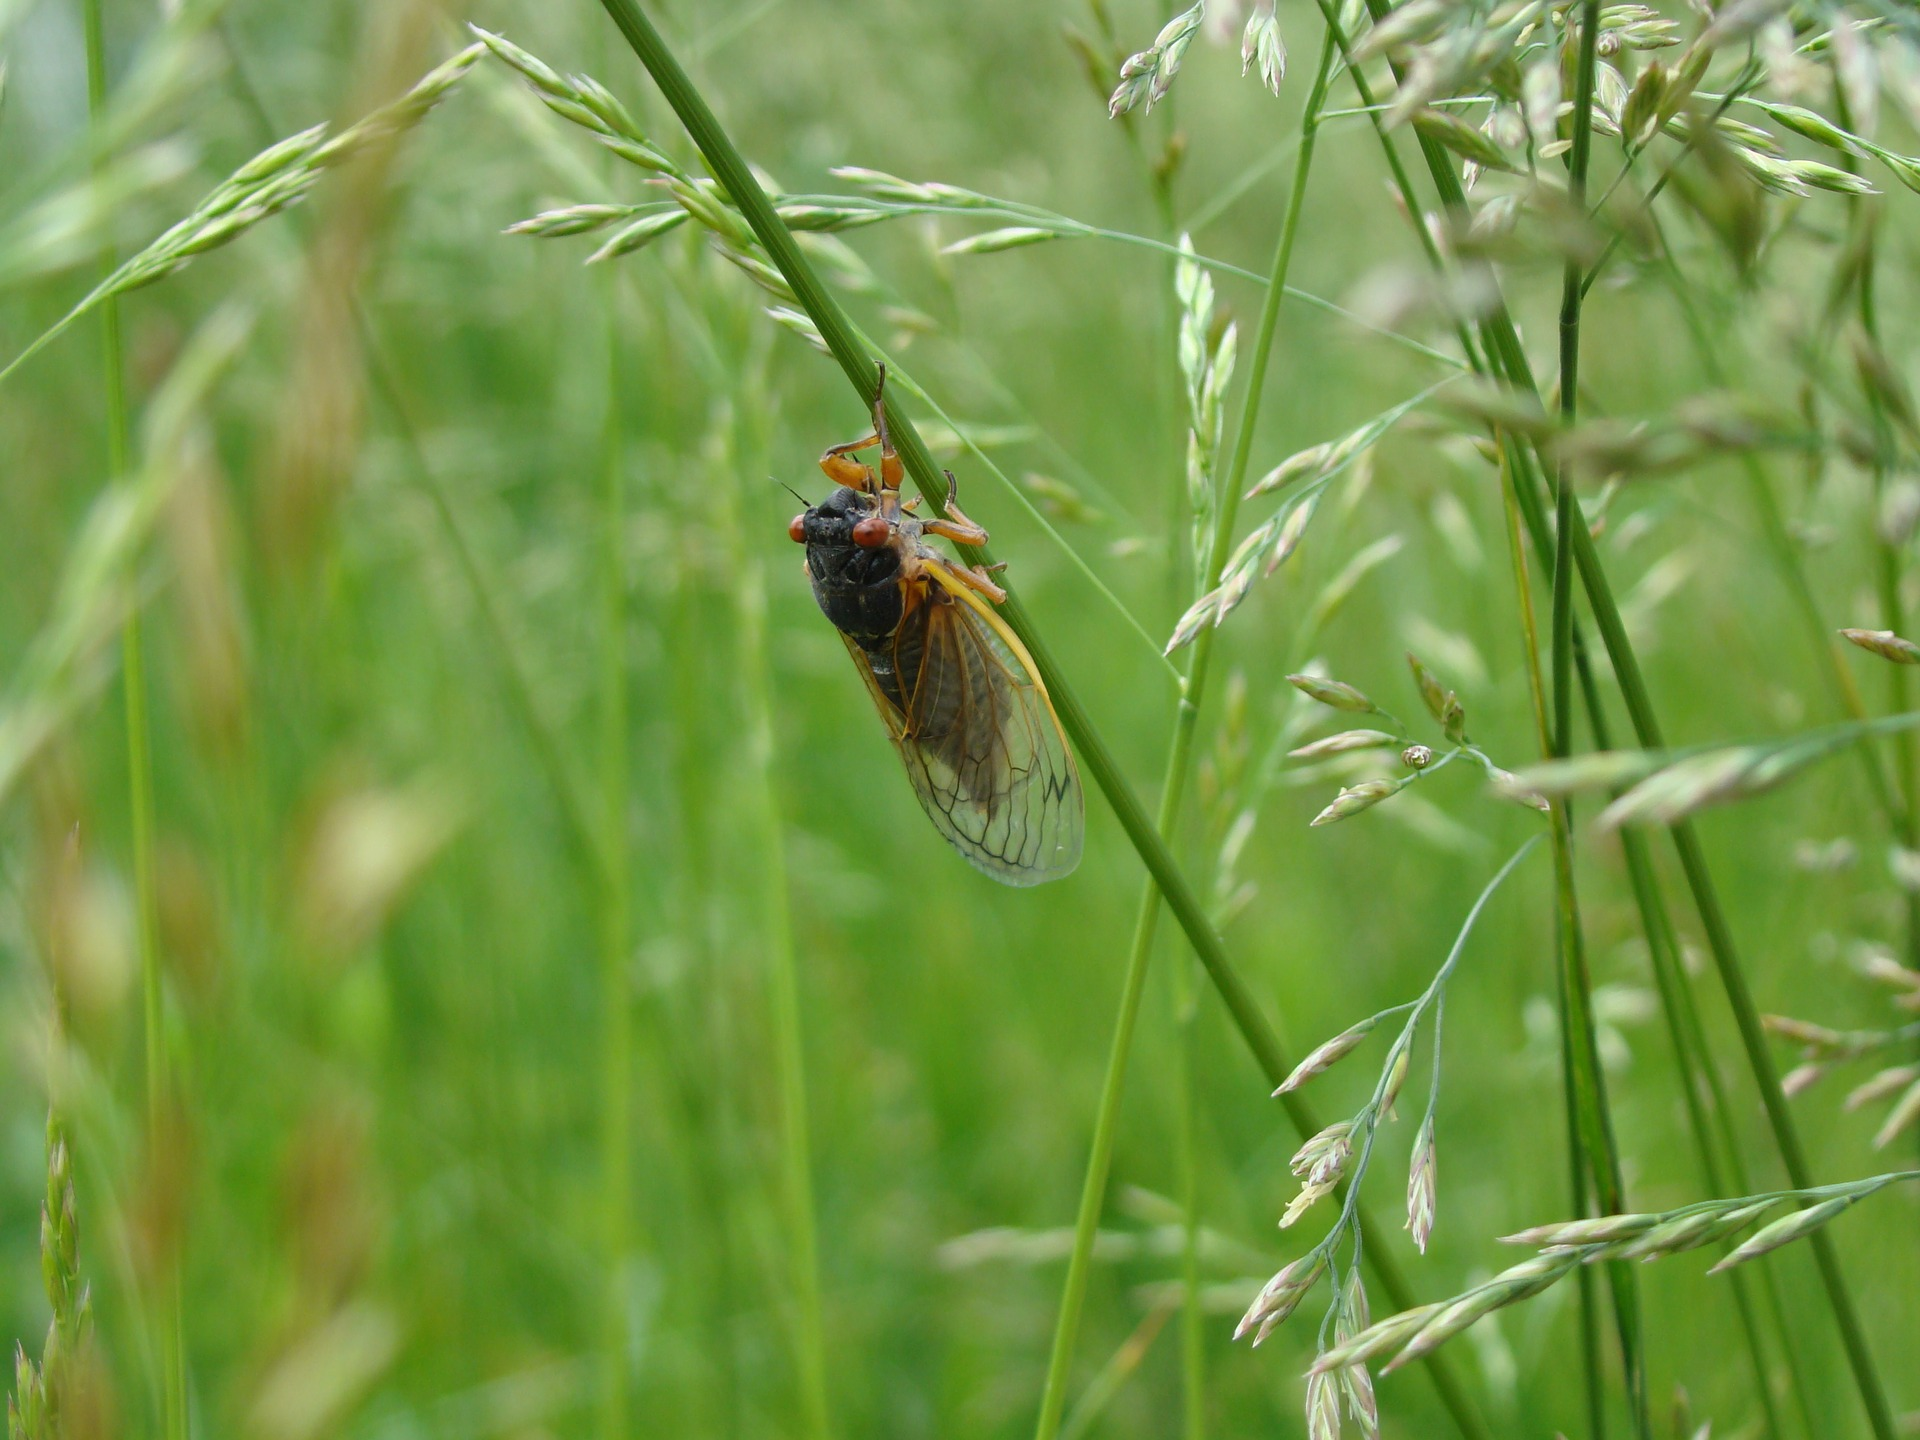 periodical cicadas emerging in parts of the United States